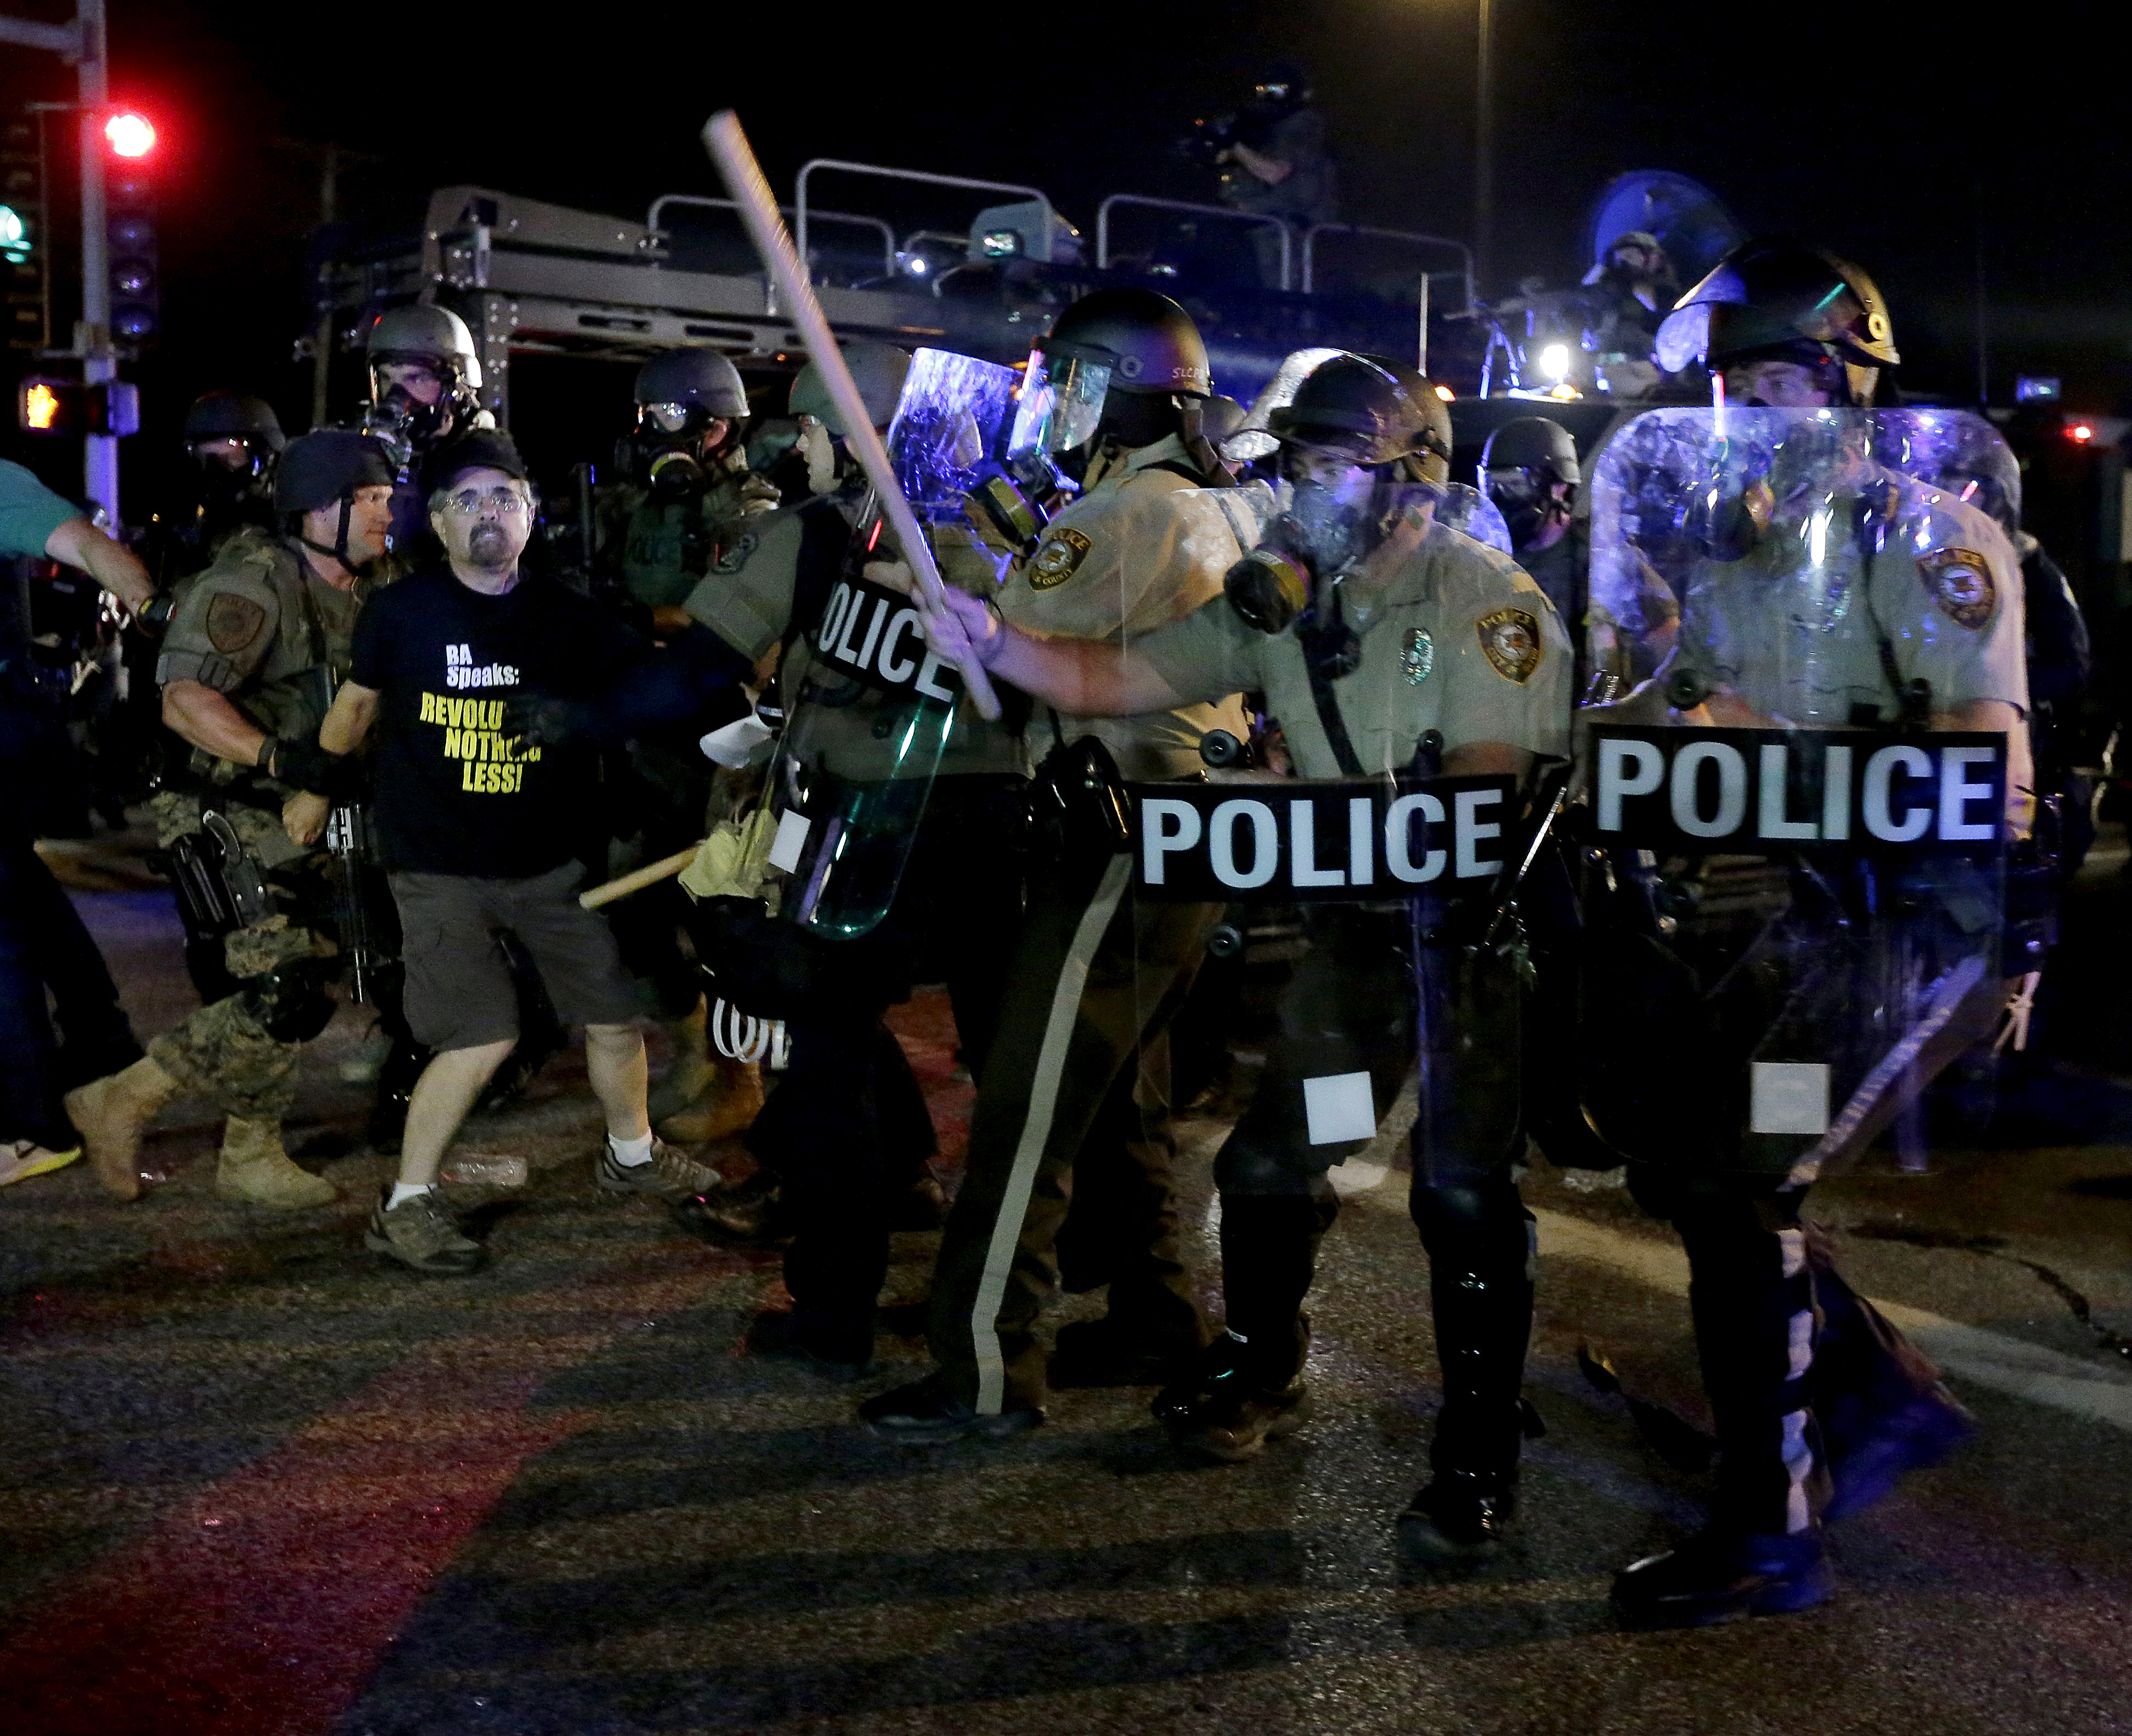 A man is detained after a standoff between protesters and police on Aug. 18, 2014 in Ferguson, Mo.